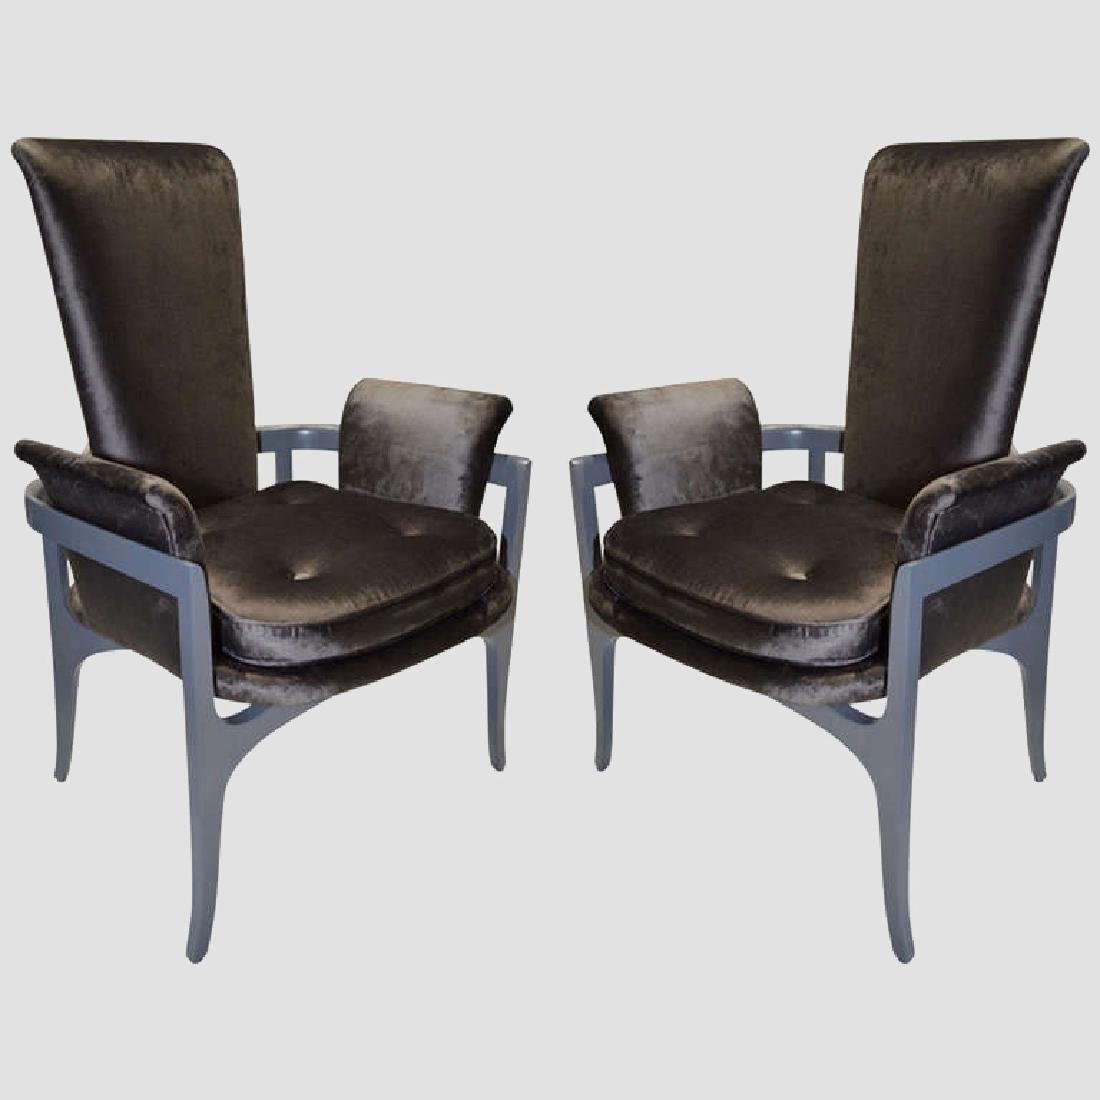 James Mont Chairs